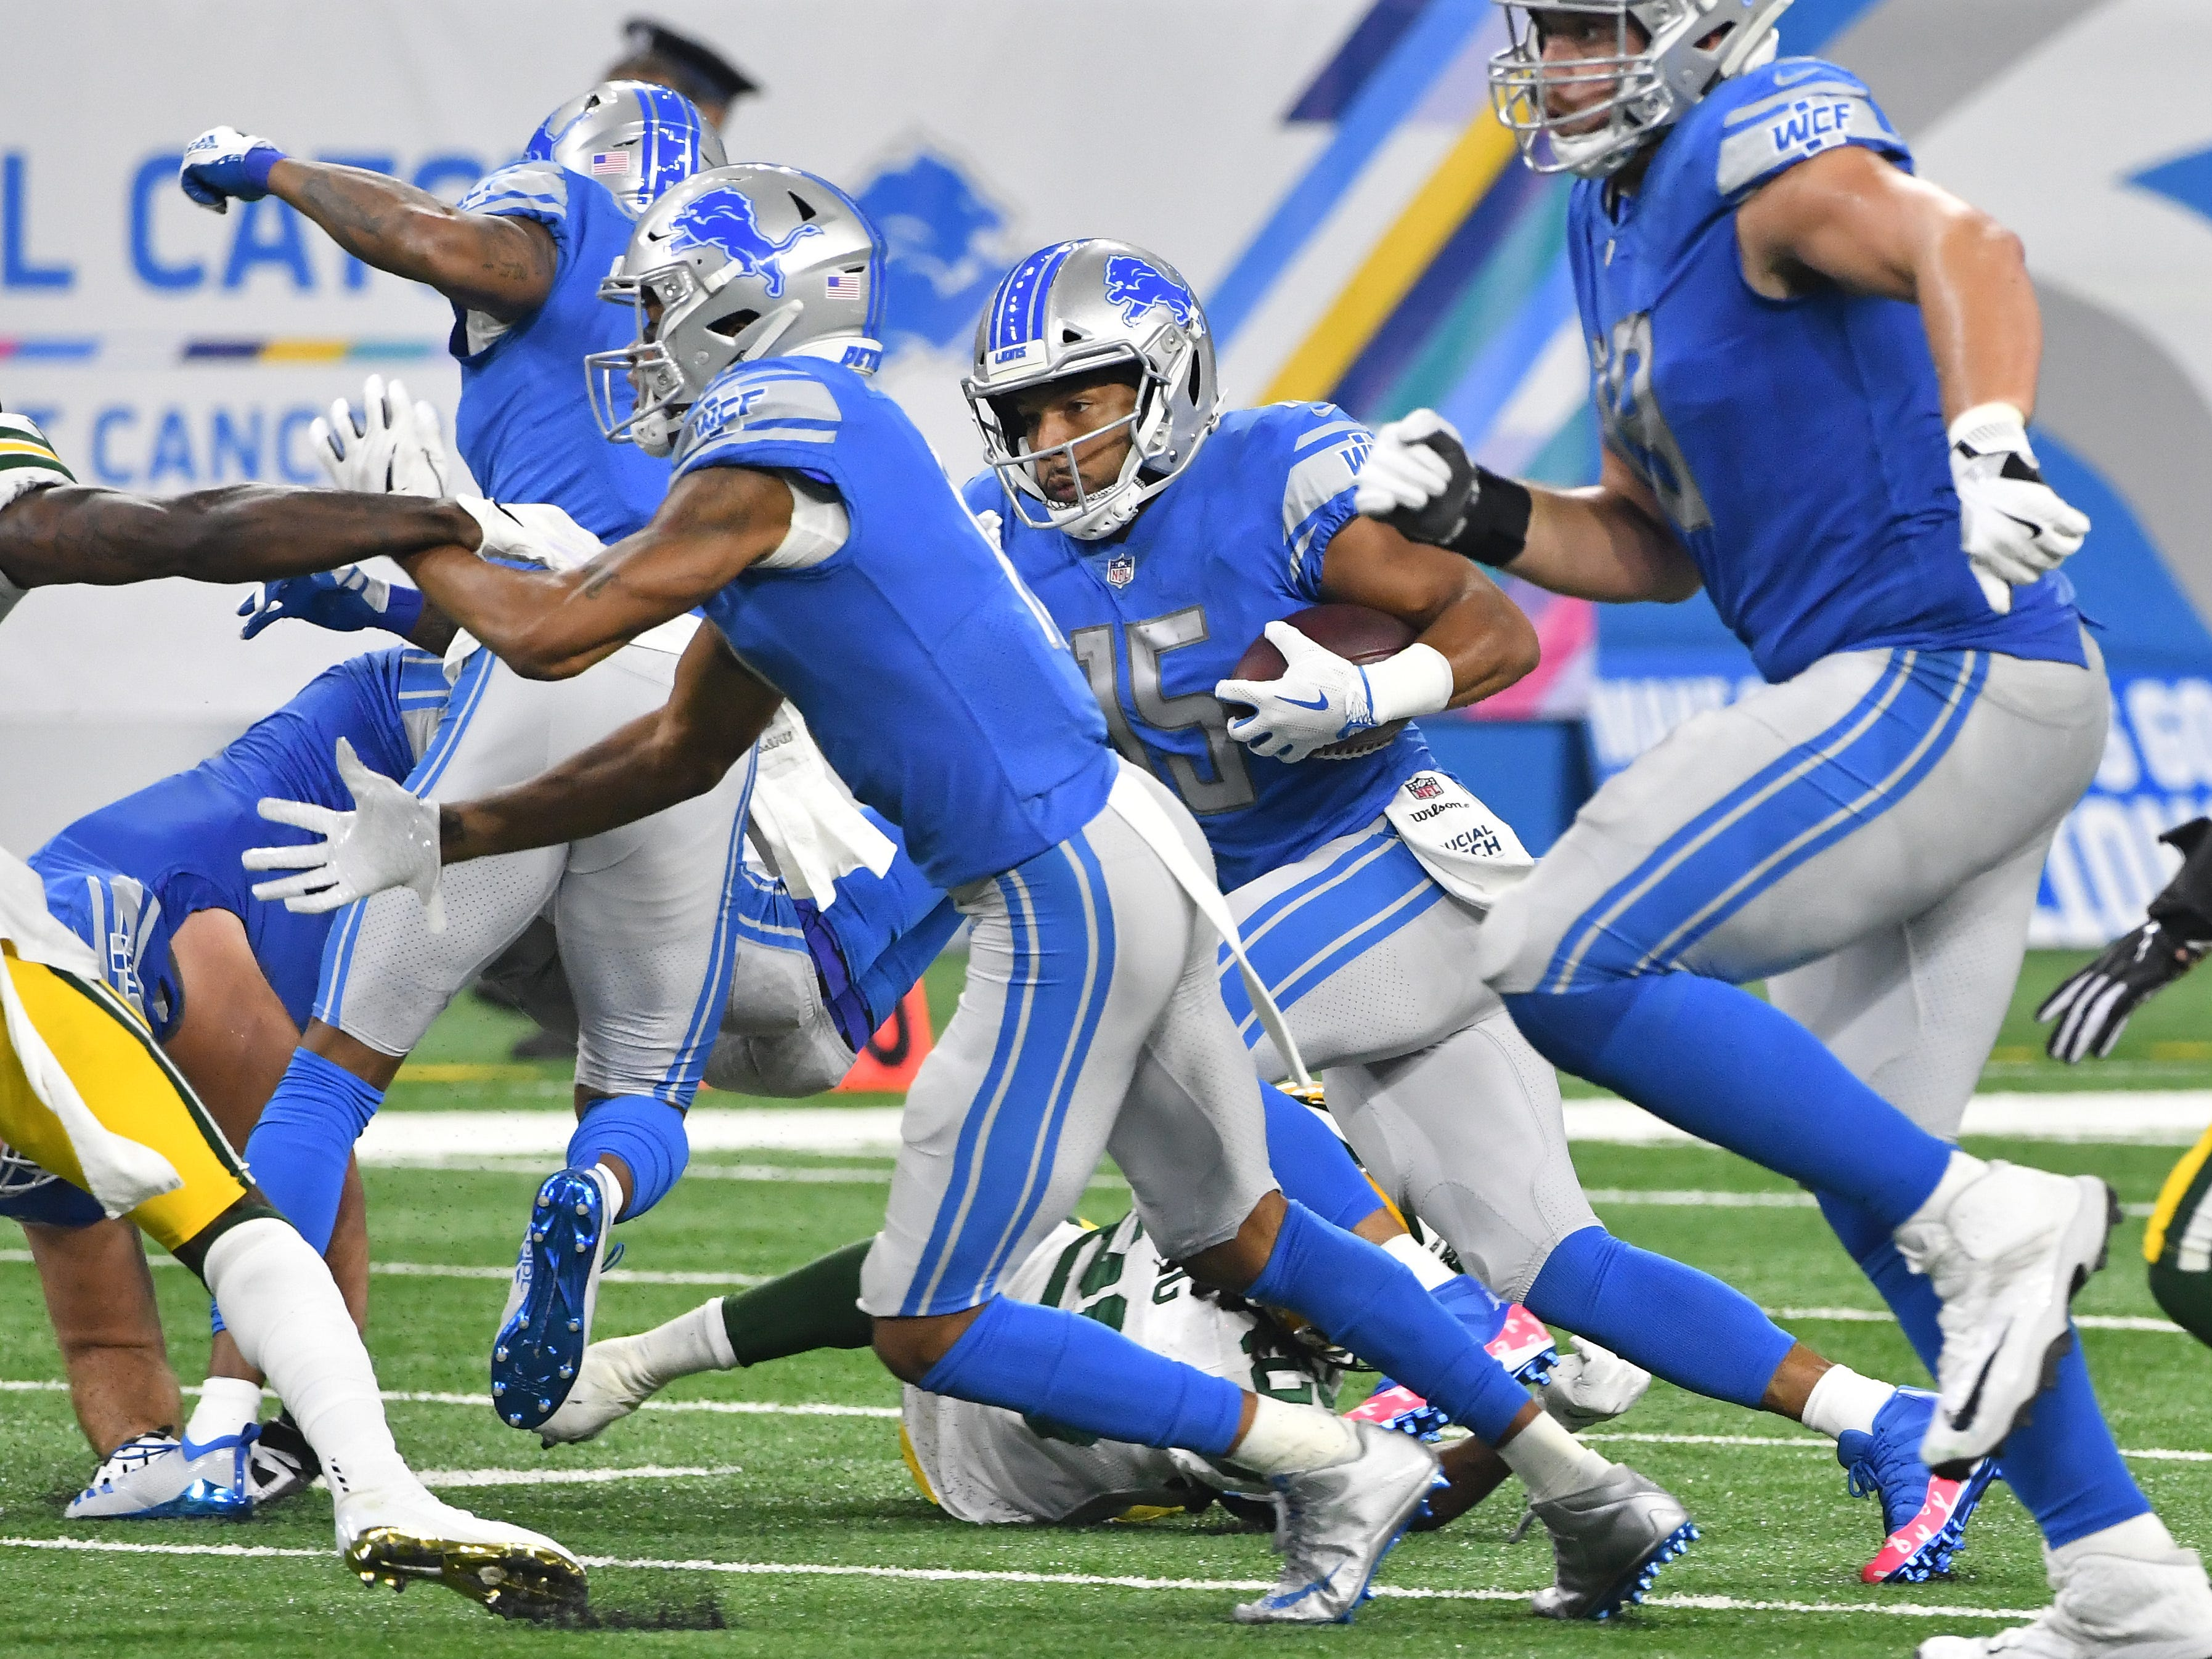 Lions wide receiver Golden Tate gets some blocking on a run in the second quarter.